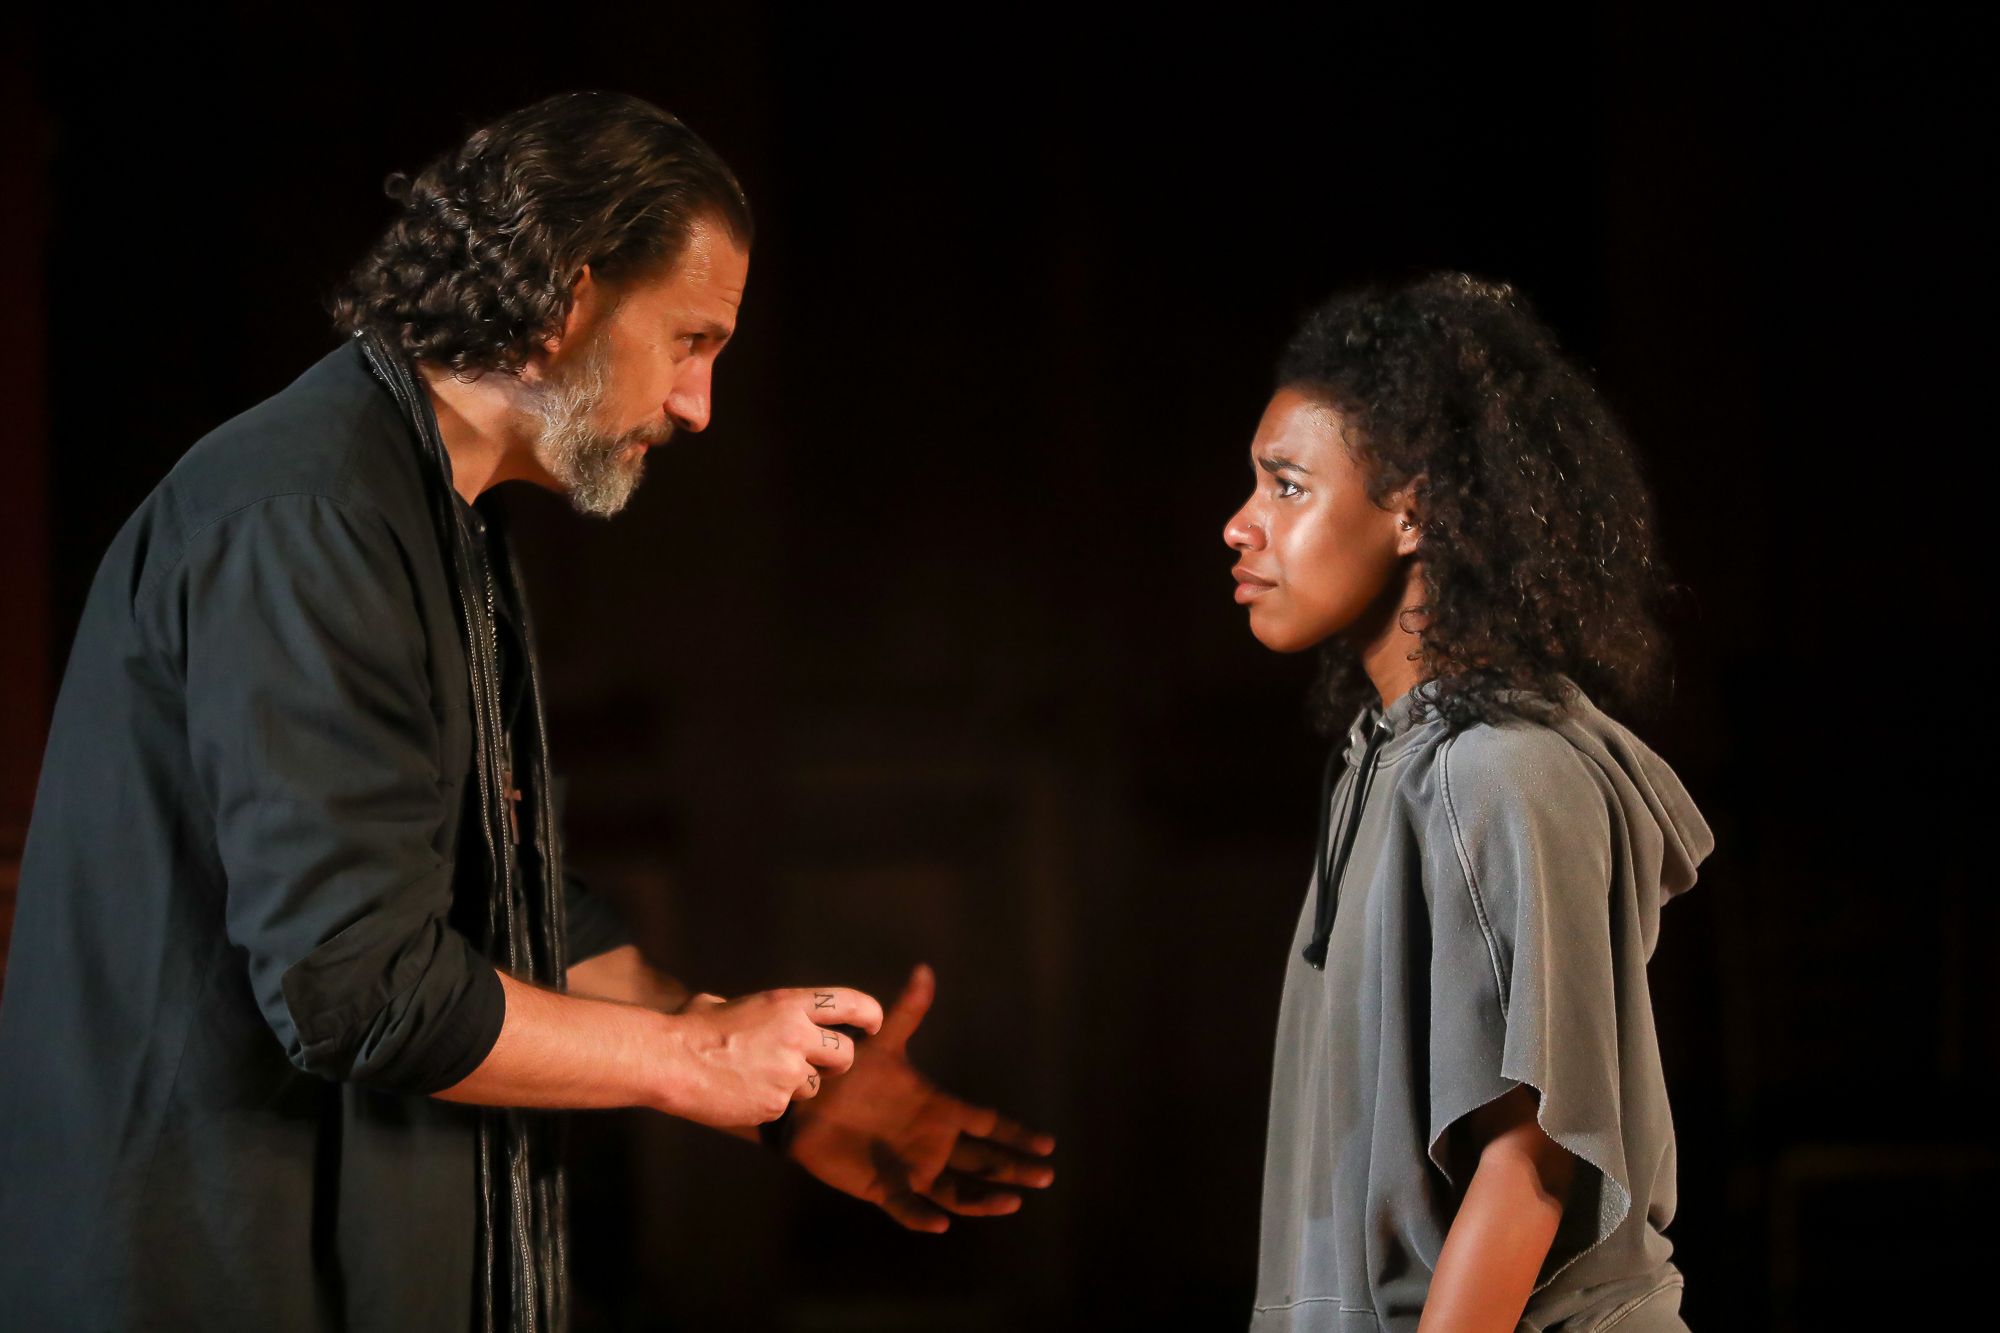 Photo of Ron Menzel as Friar Laurence and Danaya Esperanza as Juliet in Romeo & Juliet by Tony Powell.